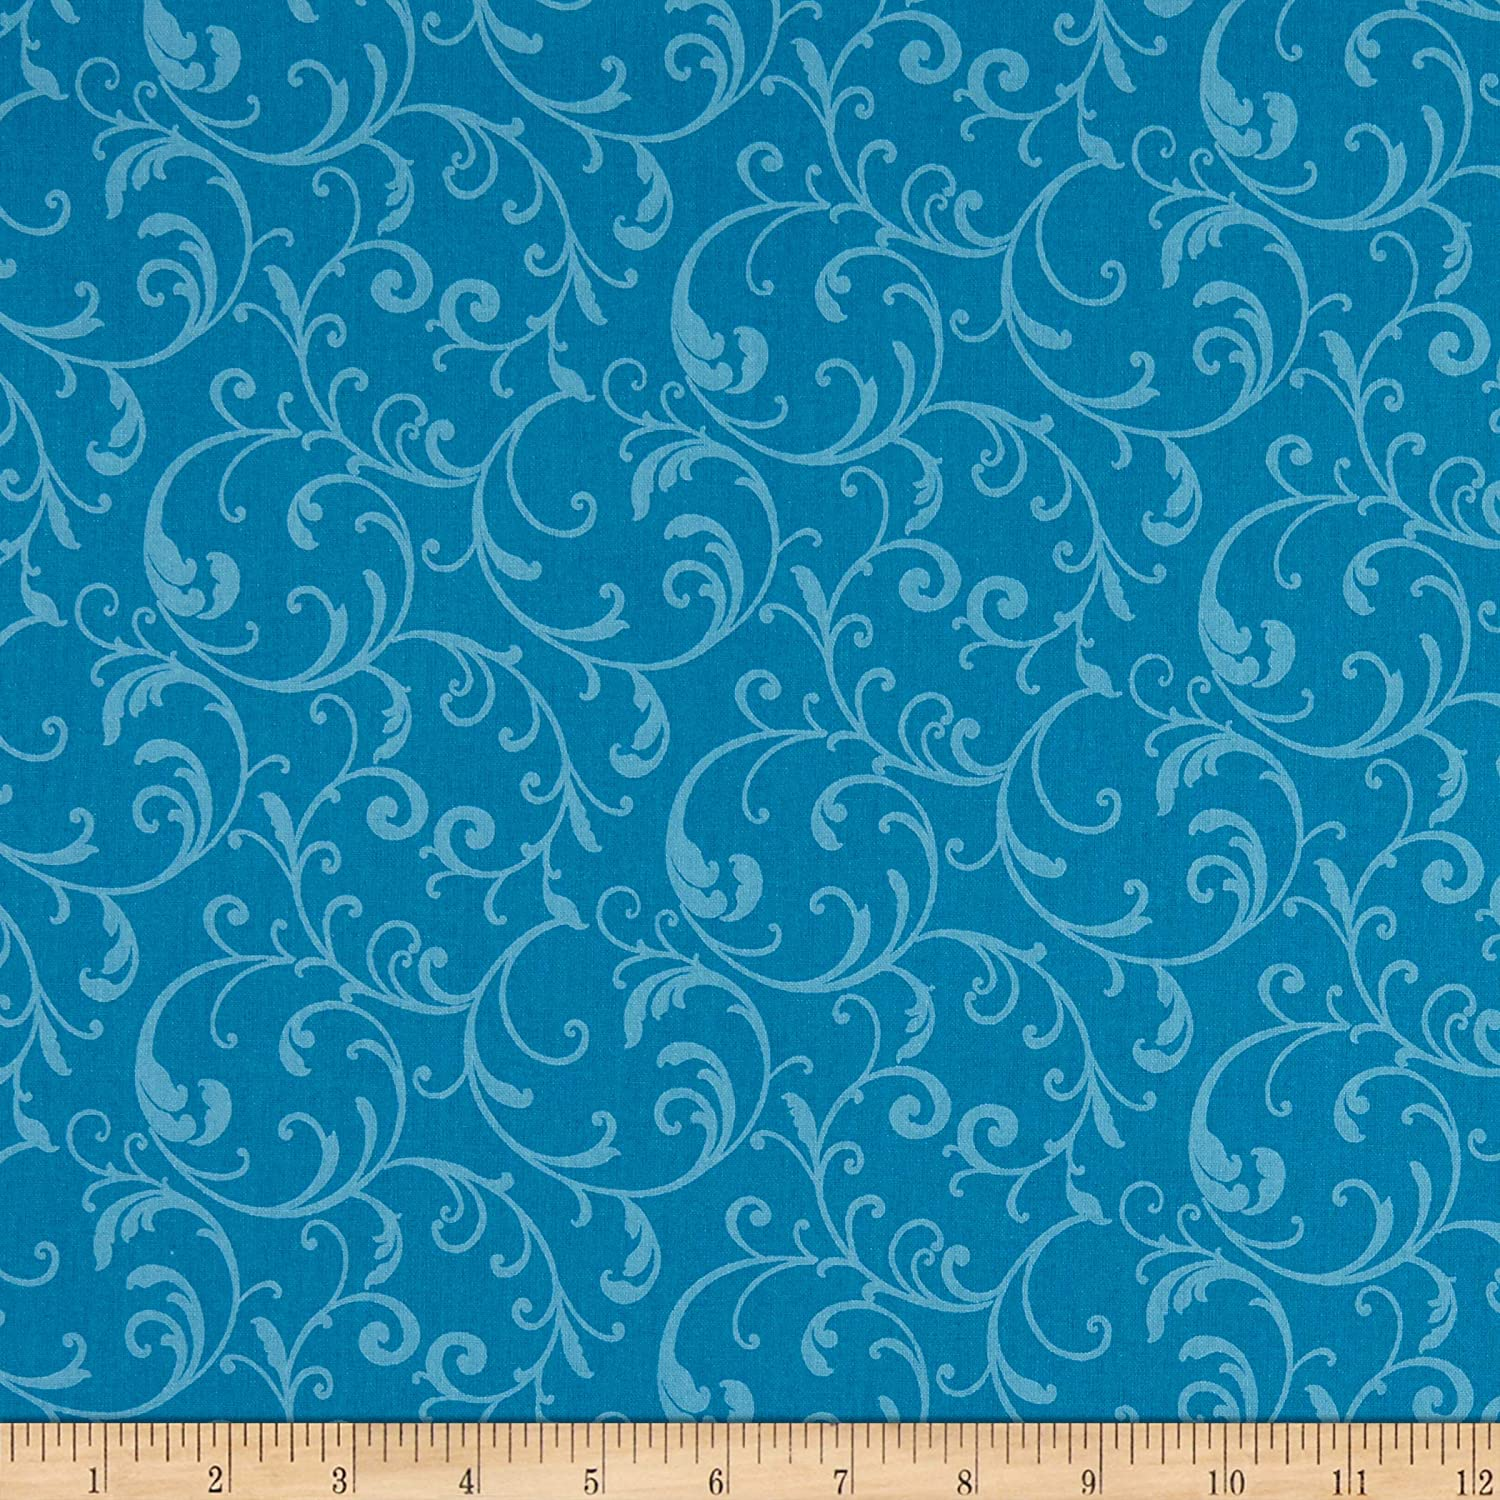 Benartex Classic Scrolls And Blenders Classic Scroll Turquoise Quilt Fabric By The Yard